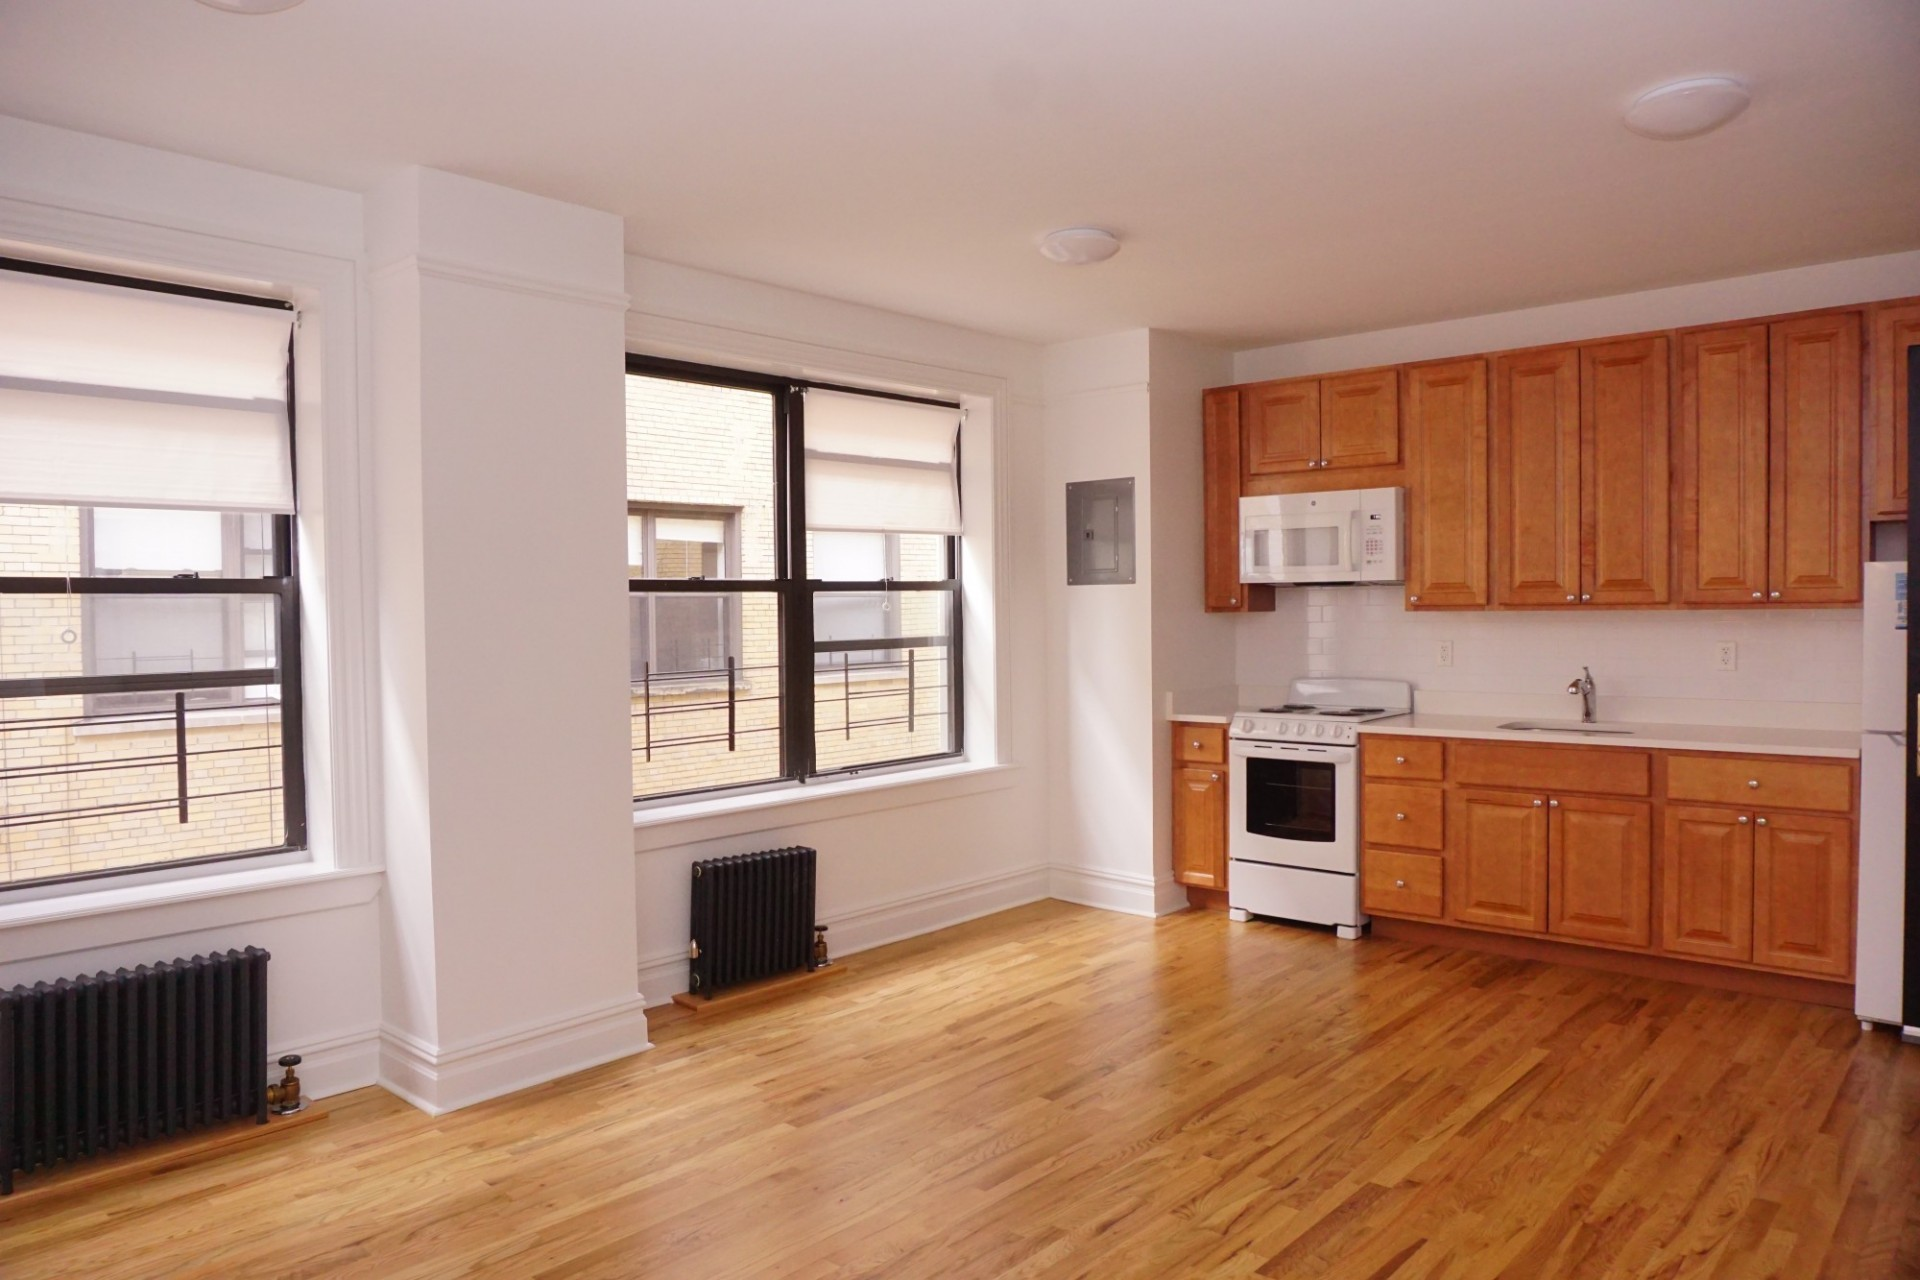 Example of a studio apartment - kitchen view